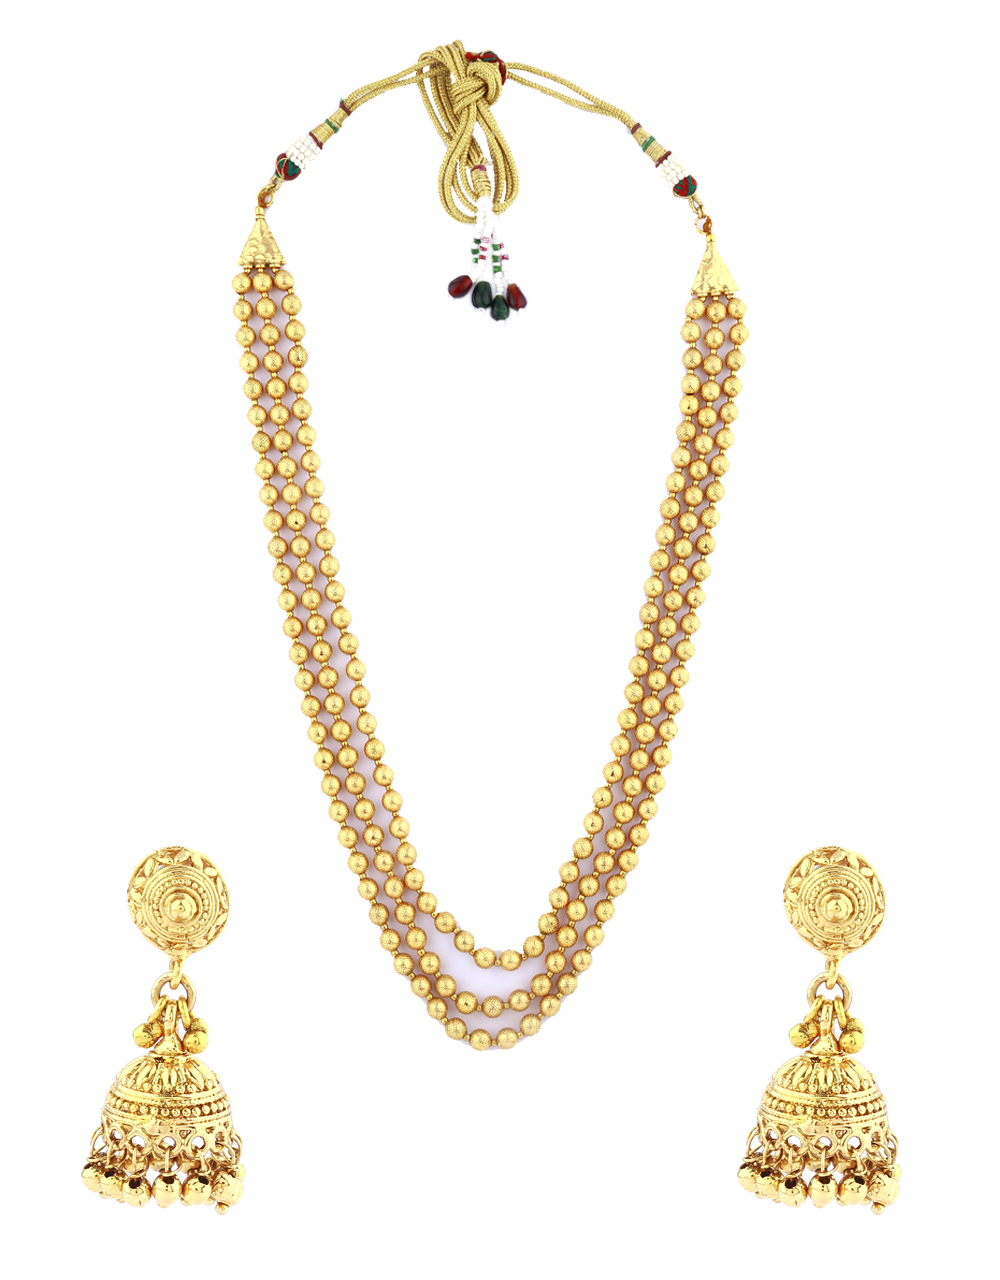 Gold Finish Beads Necklace|Multiple Layers Necklace Set For Women|Maharashtrian jewellery For Girls